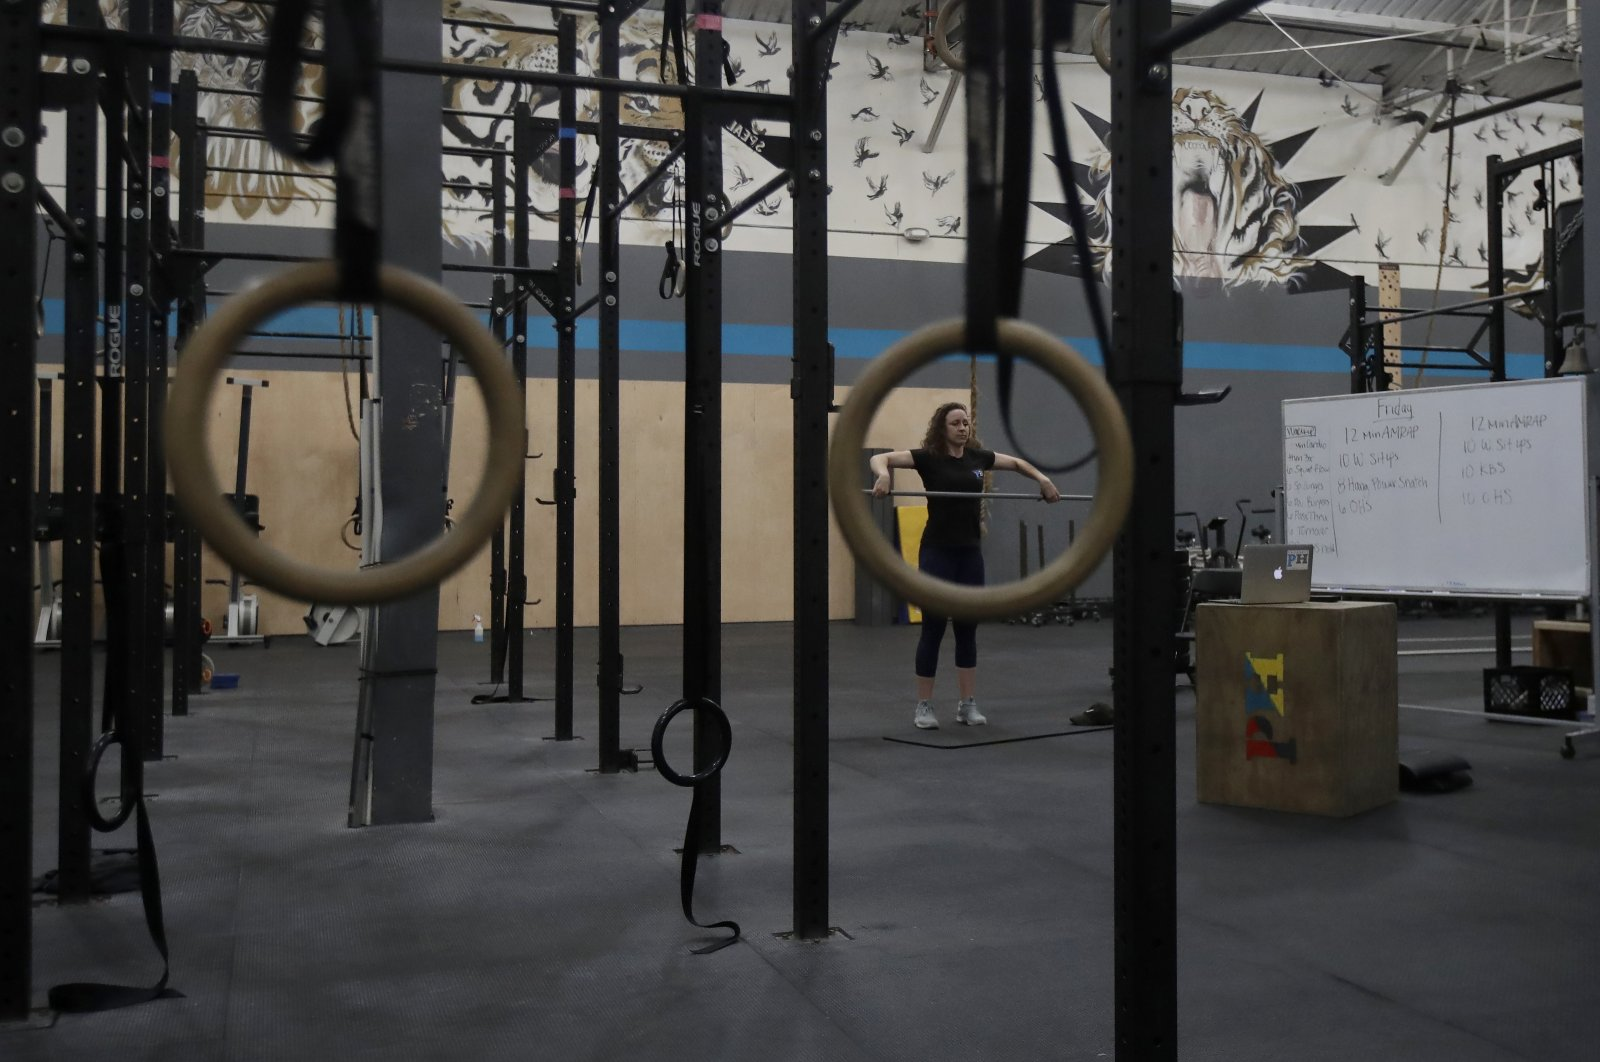 Alexis Garrod, CrossFit Potrero Hill partner and head coach, demonstrates an exercise to participants while instructing a class over Zoom in an empty gym in San Francisco, U.S., April 24, 2020. (AP Photo)